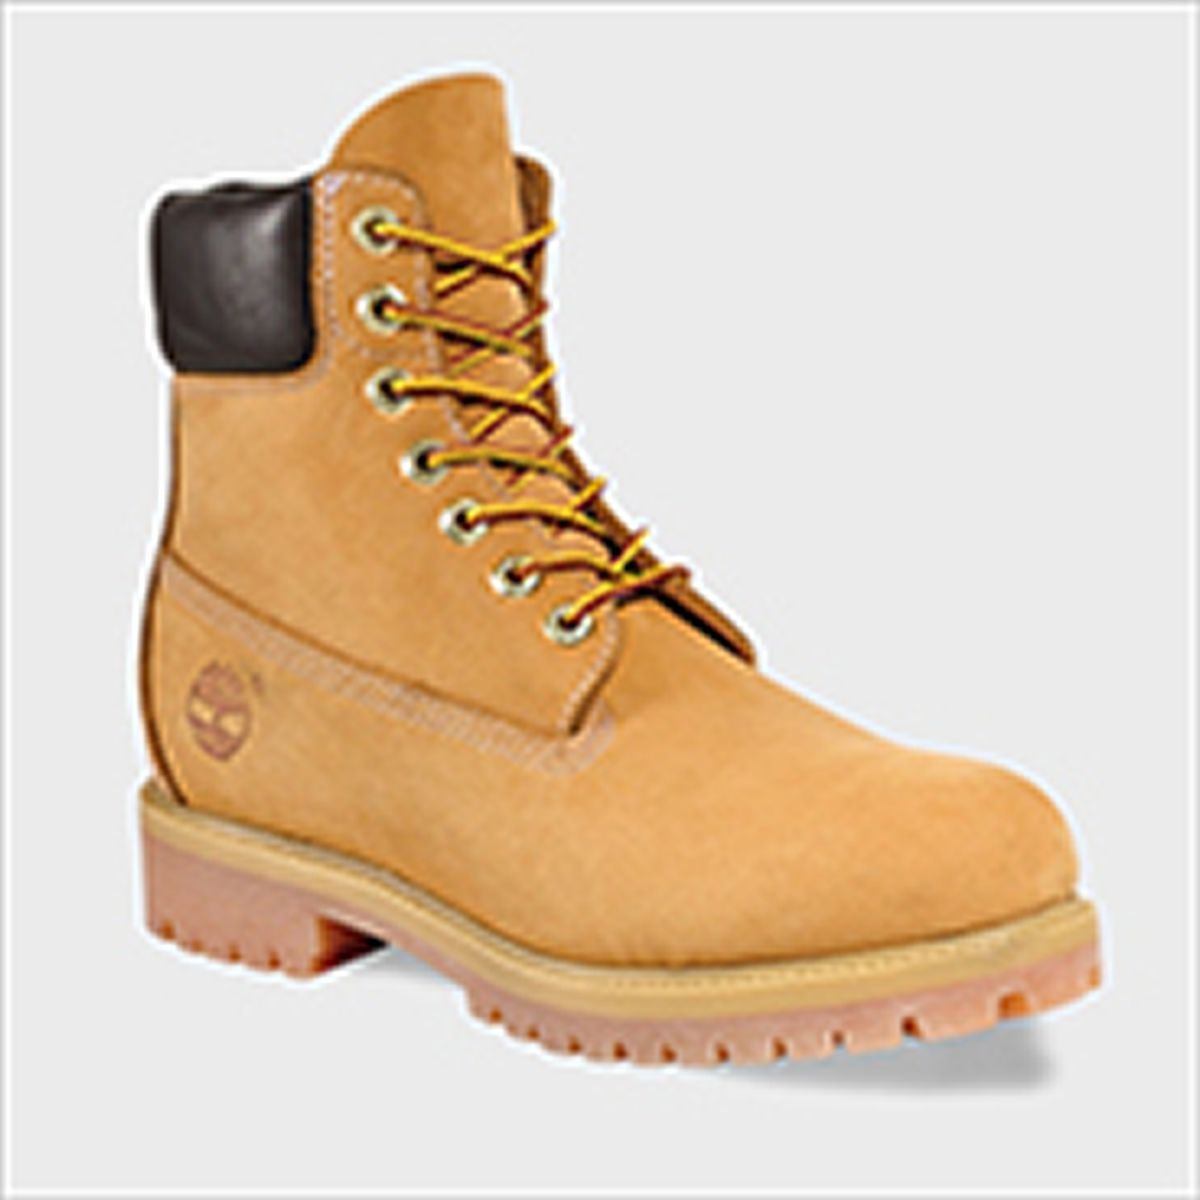 wholesale dealer 4cddf 23d13 Timberland Boots and Shoes For Men - Macys